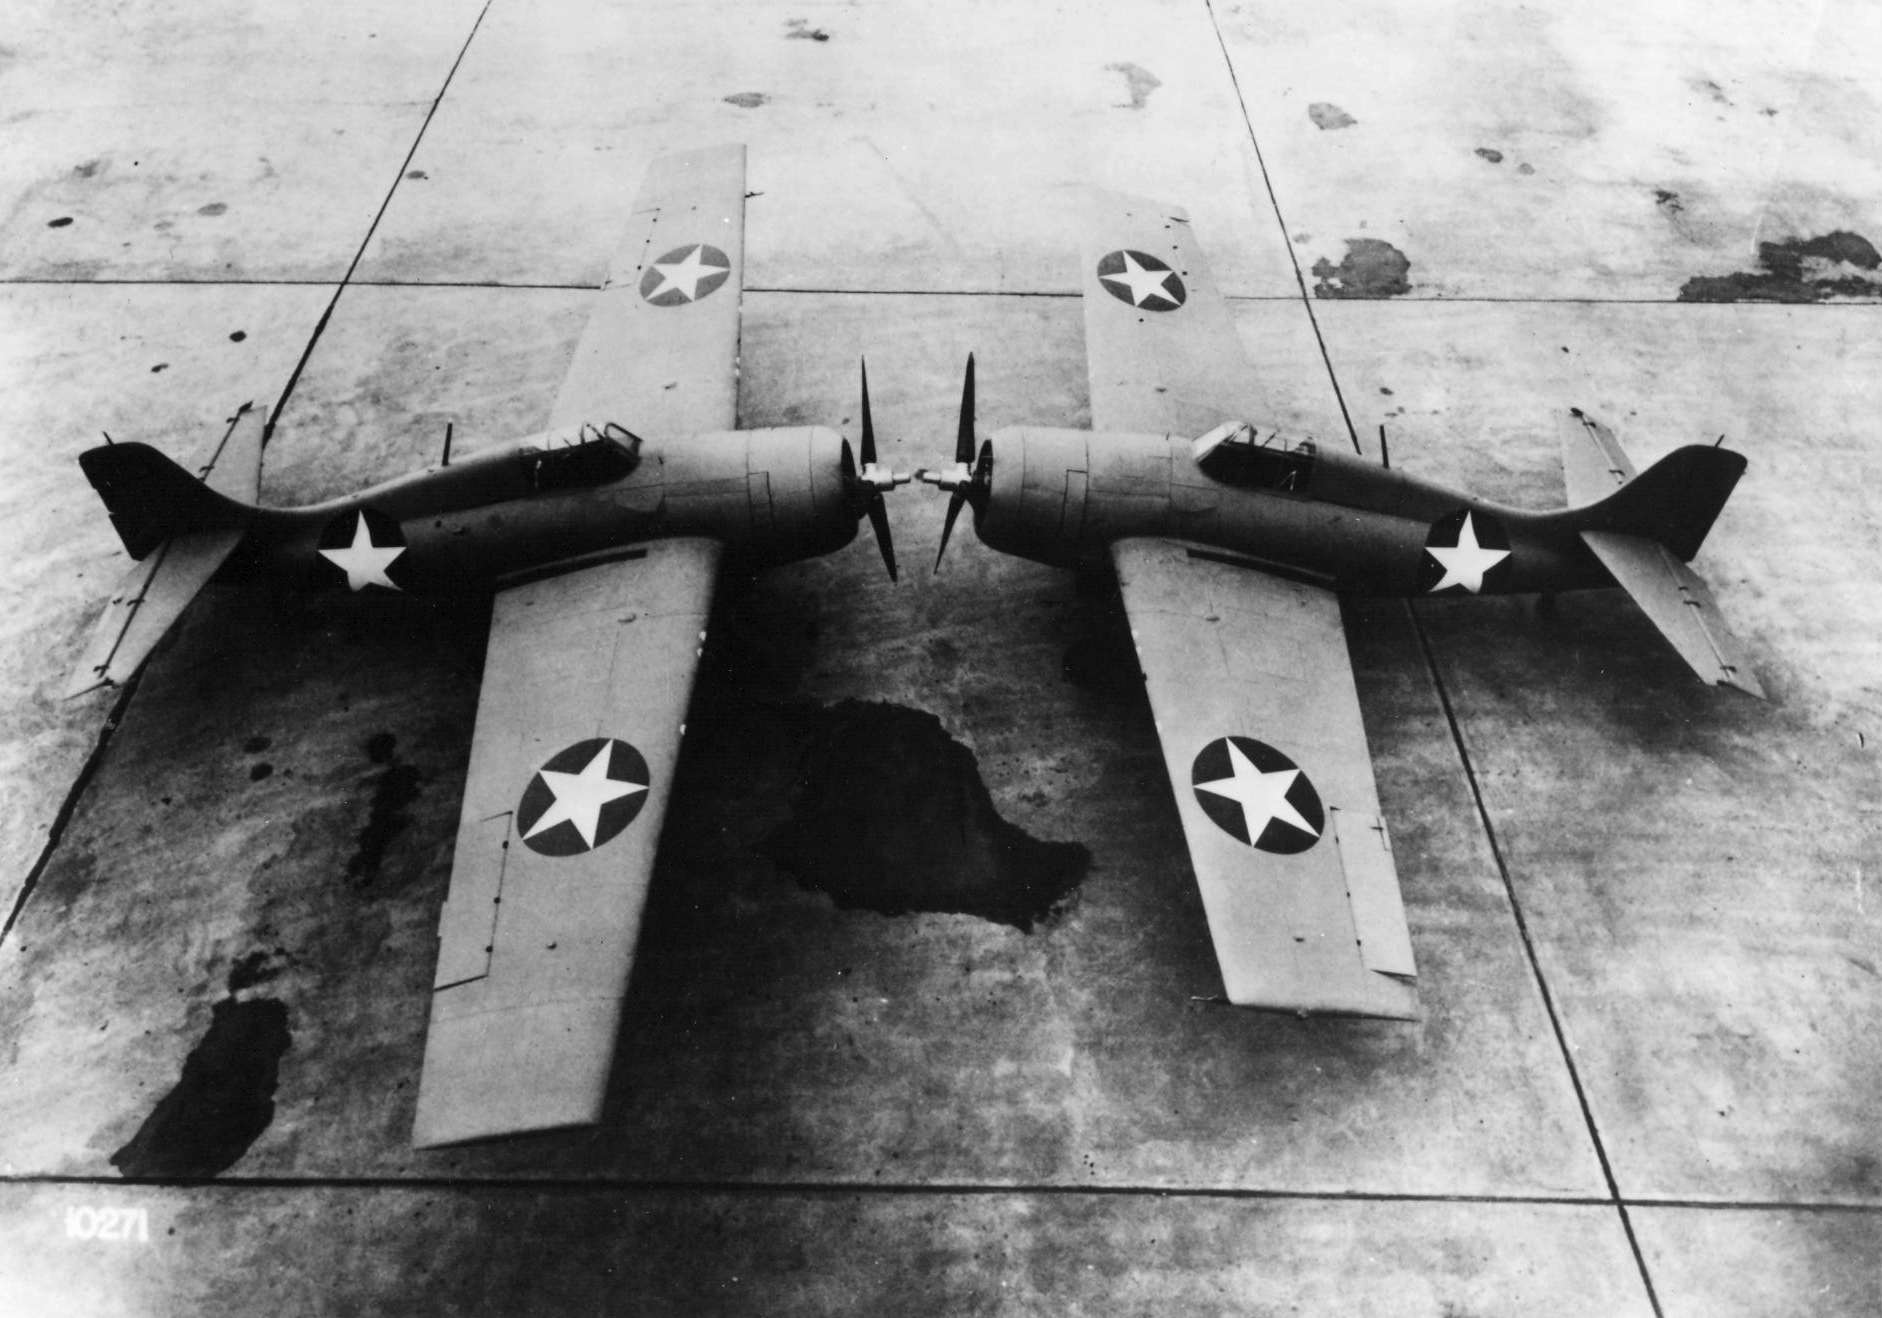 Grumman F4F 3 Wildcat with experimental wing extension 01